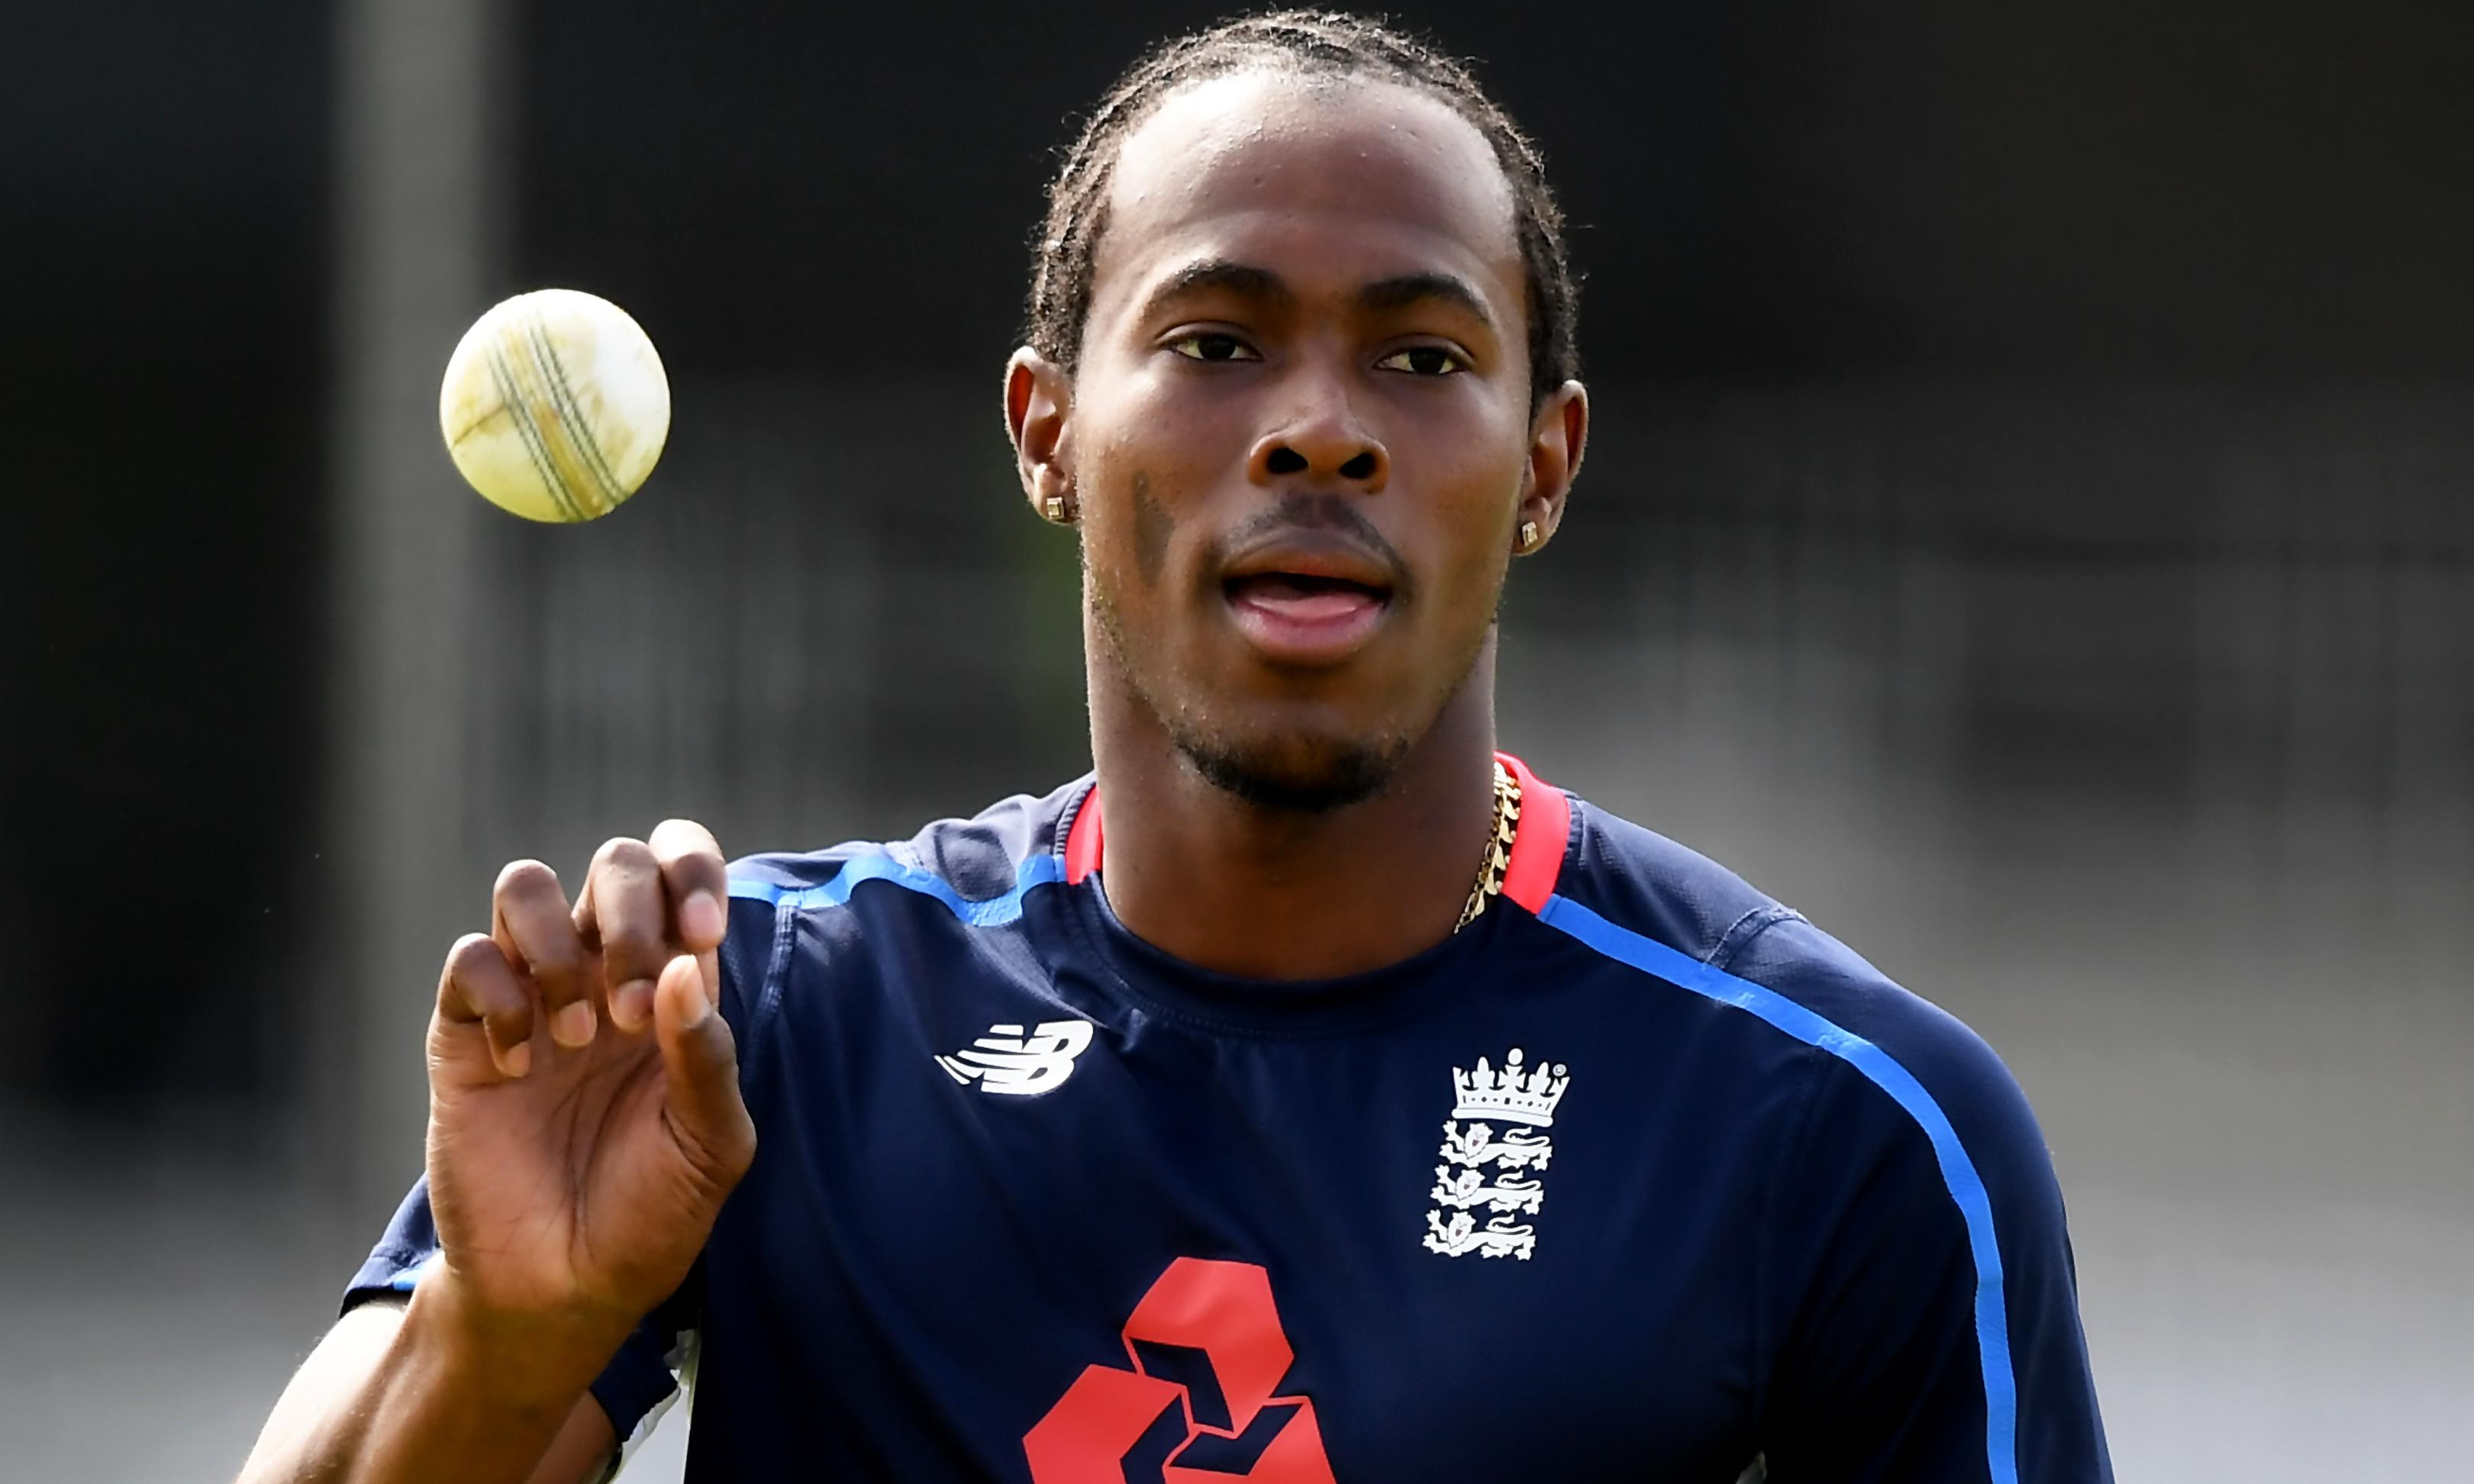 Jofra Archer named in England's Cricket World Cup squad as Willey misses out